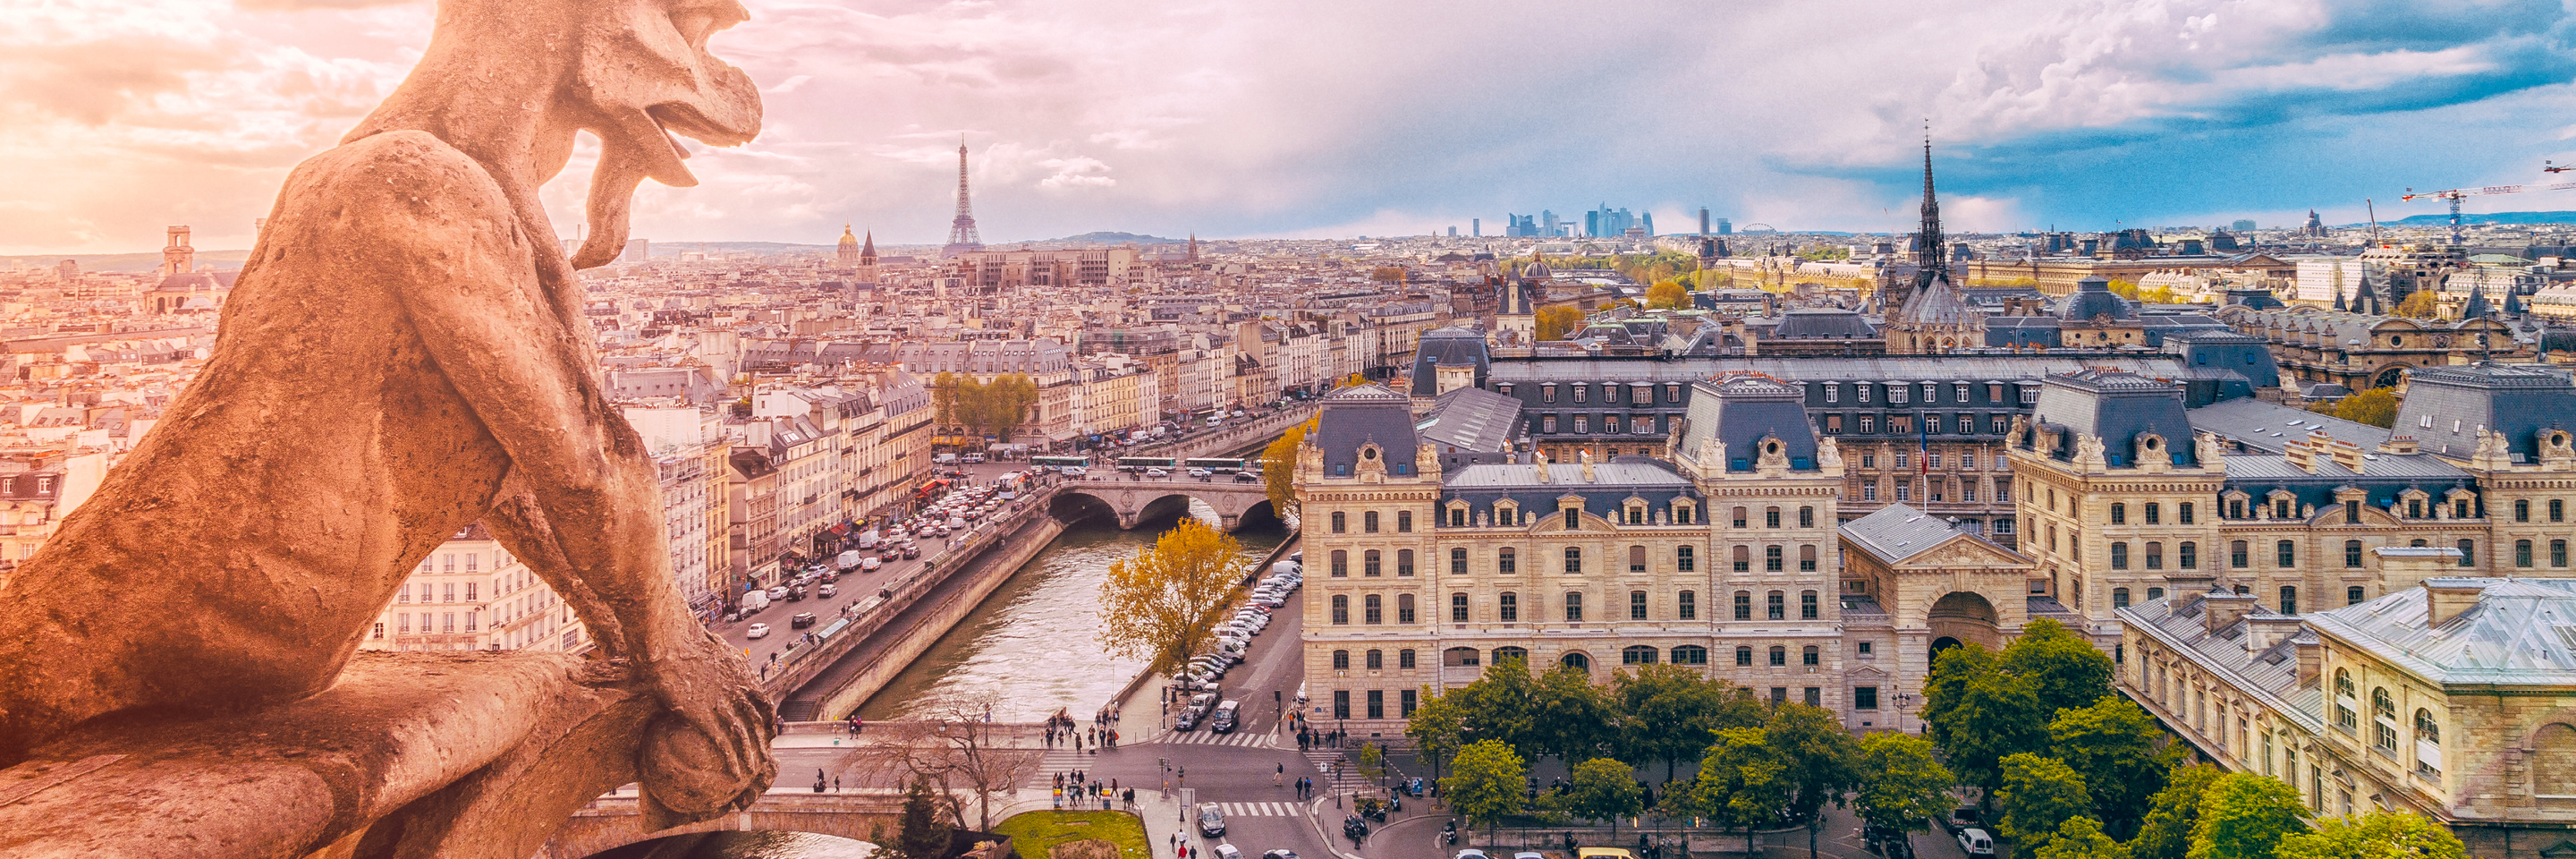 A Culinary Experience in Burgundy & Provence with 2 Nights in Nice, 2 Nights in Paris & 3 Nights in London (Northbound)